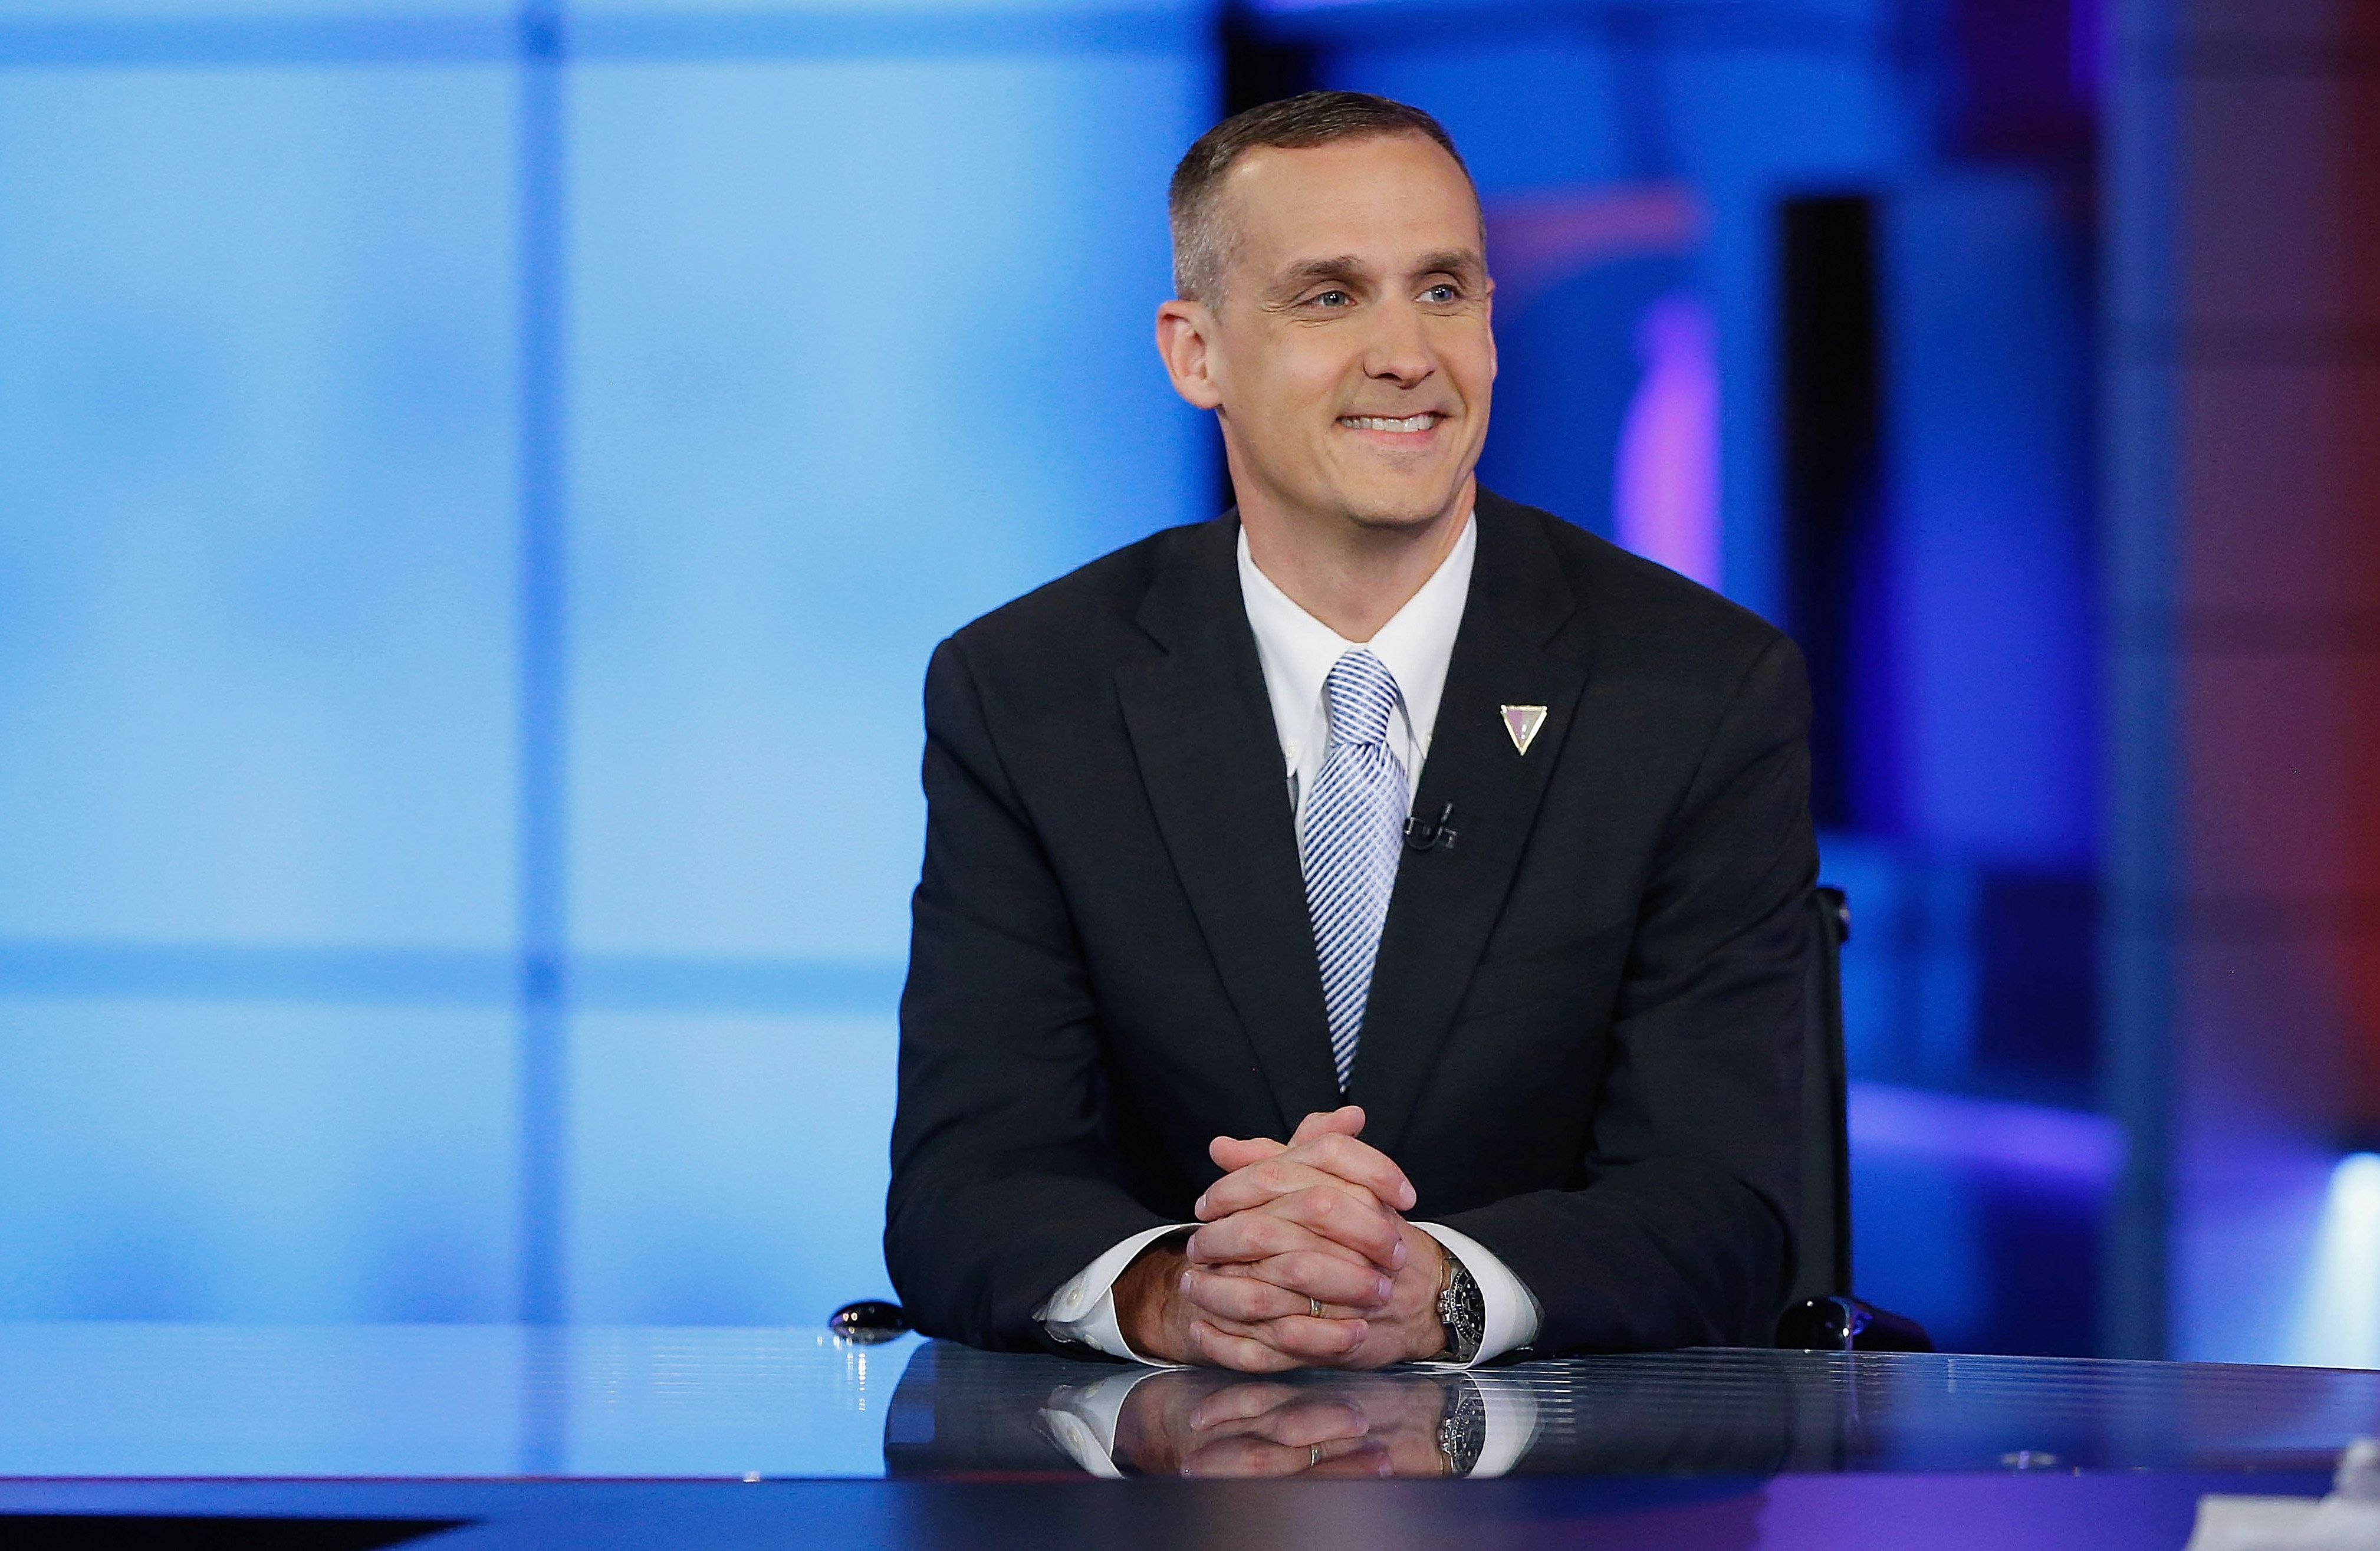 Donald Trump's campaign manager Corey Lewandowski insists his boss is leading in the polls with womenand Latino voters.